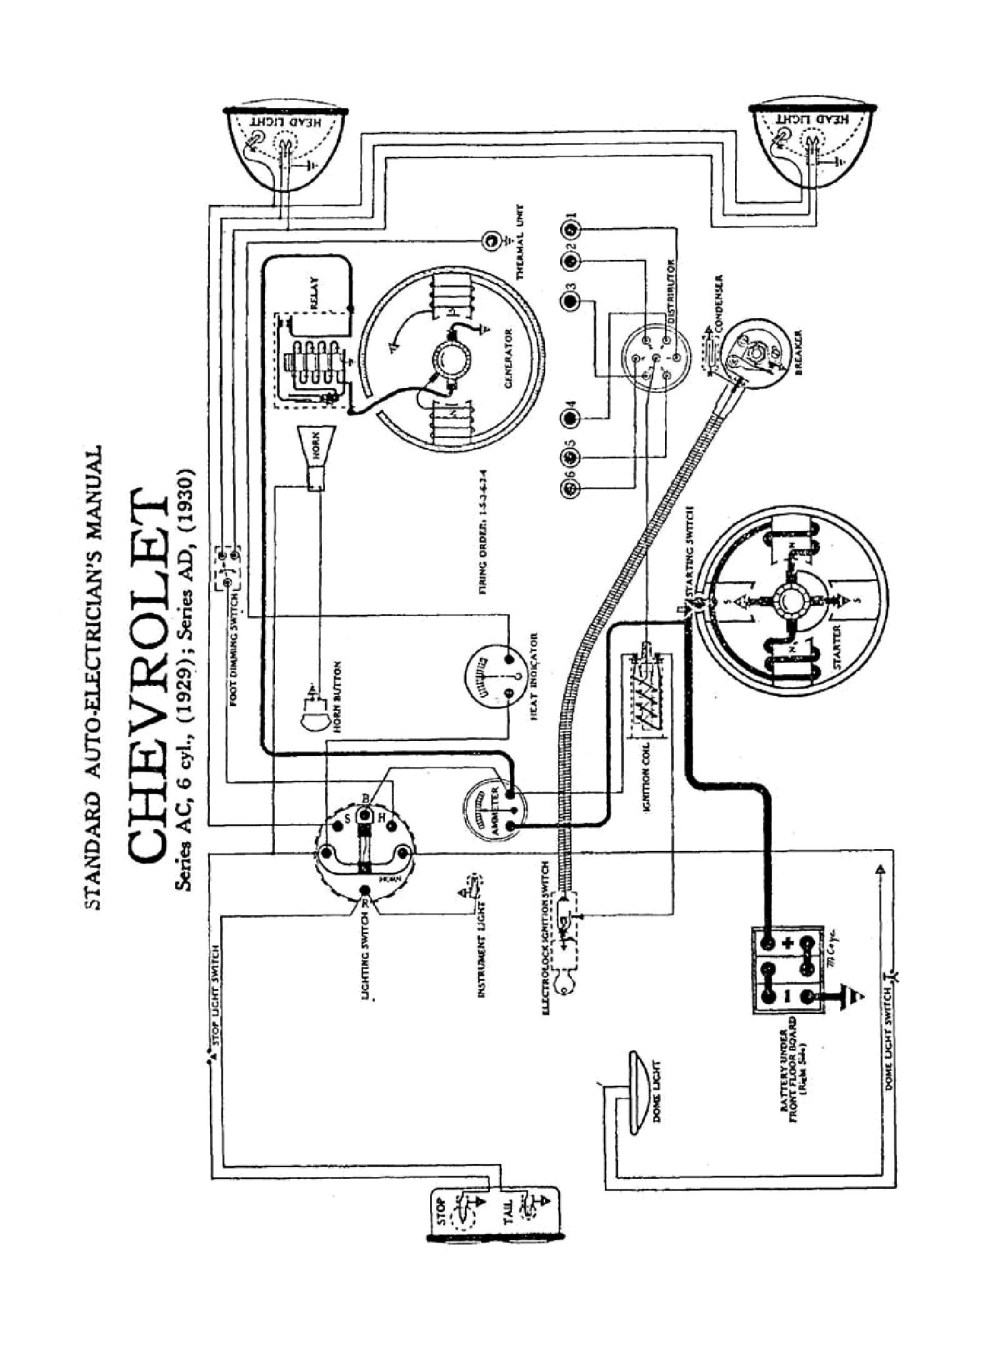 medium resolution of model t ford wiring diagrams free image wiring diagram engine wire rh ingredican co ford model